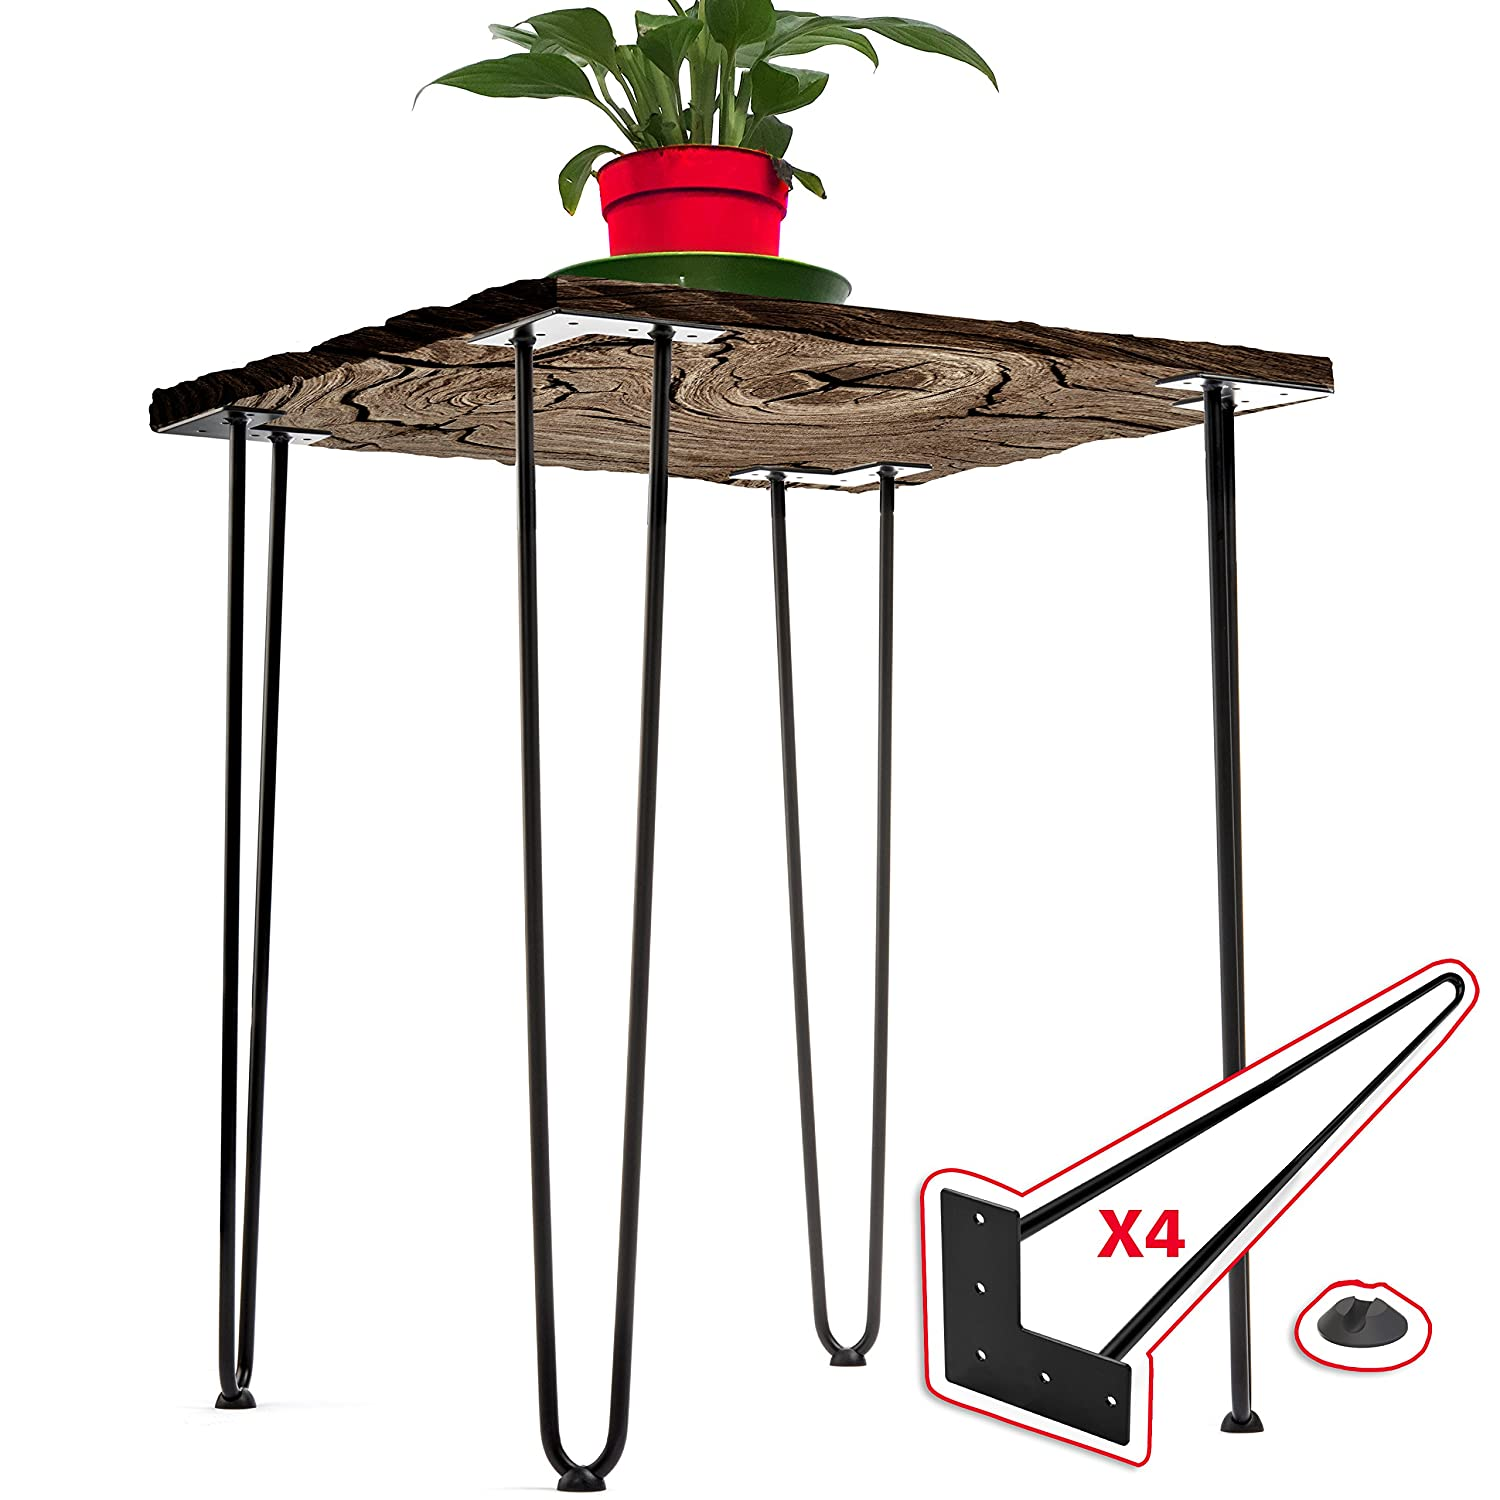 16 Inches Chairs and Home DIY Projects Interesthing Home Hairpin Legs for Coffee and End Tables